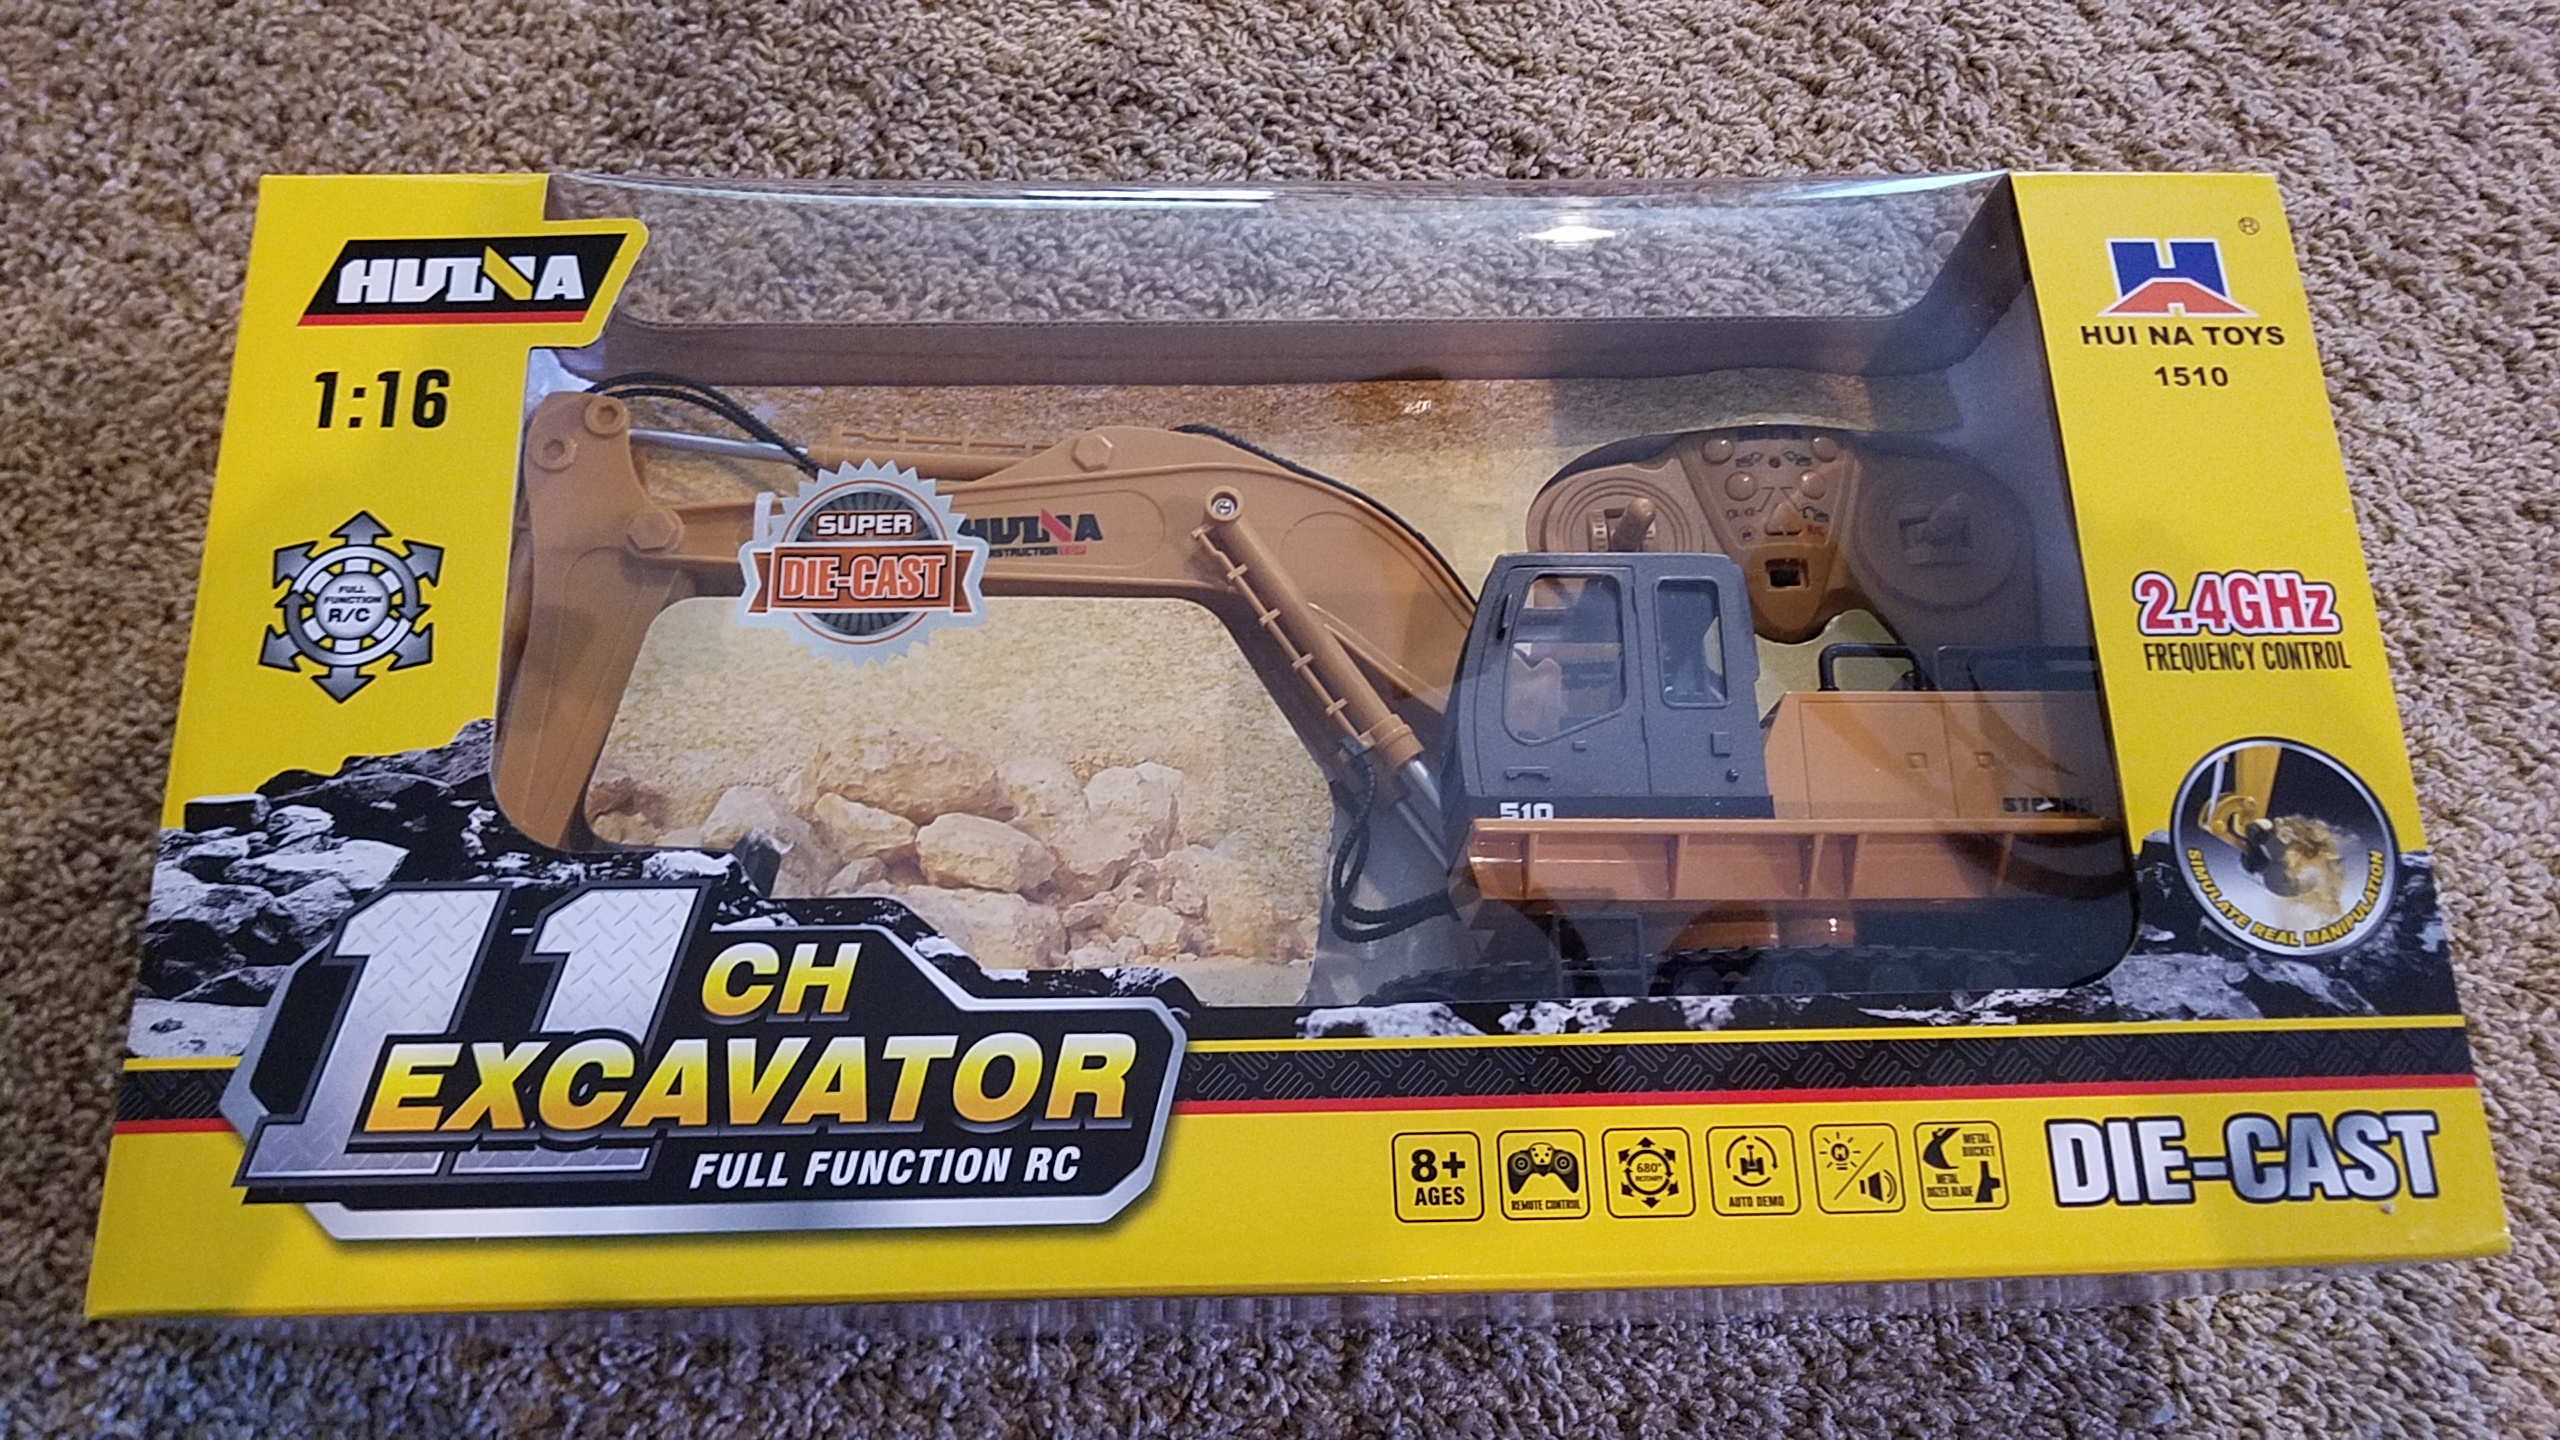 The best RC toy I have ever bought!